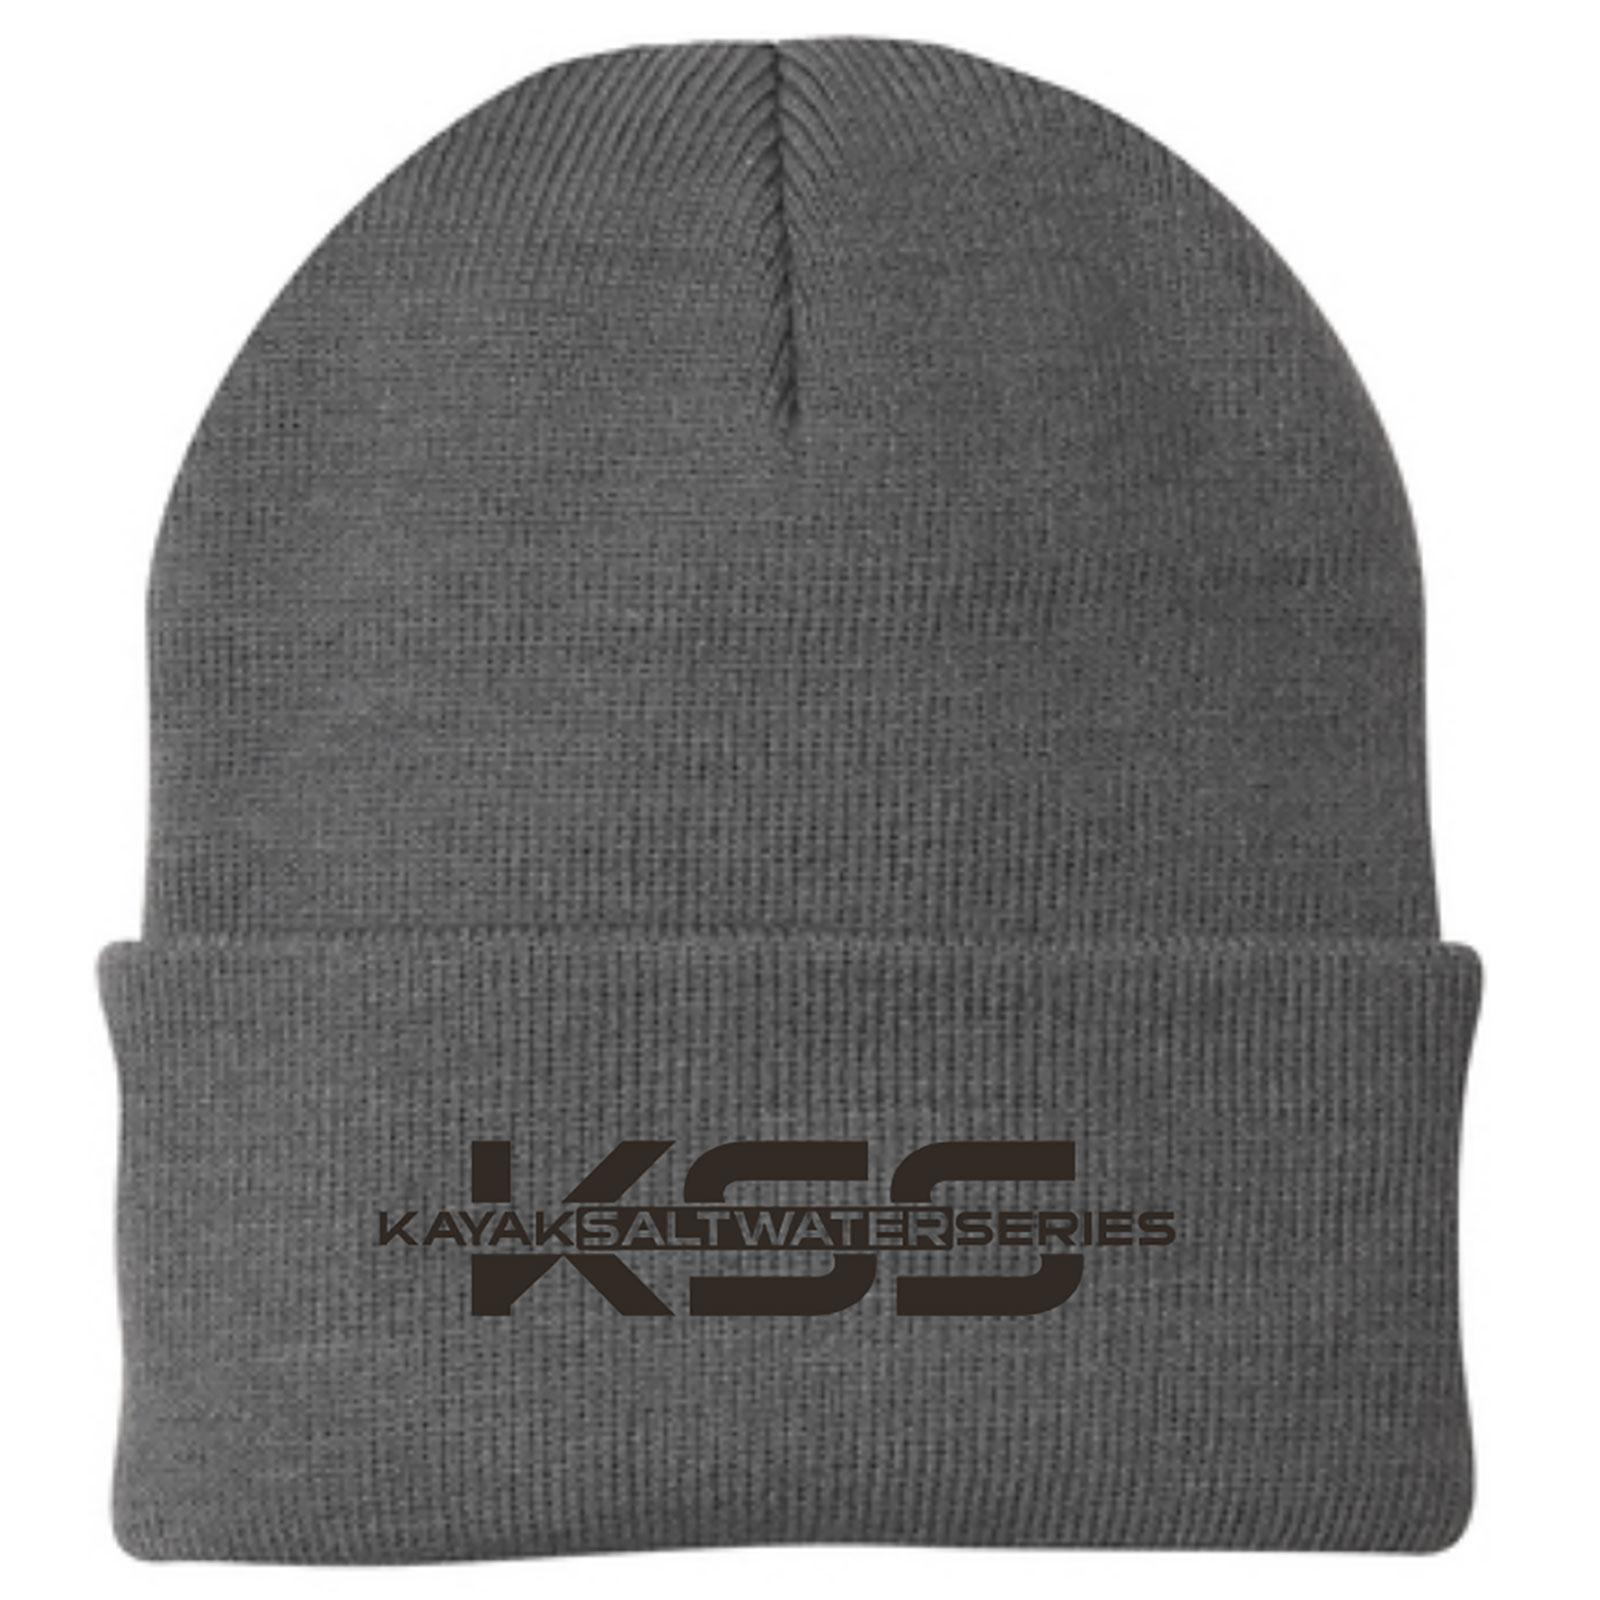 Kayak Saltwater Series Men's Classic Beanie